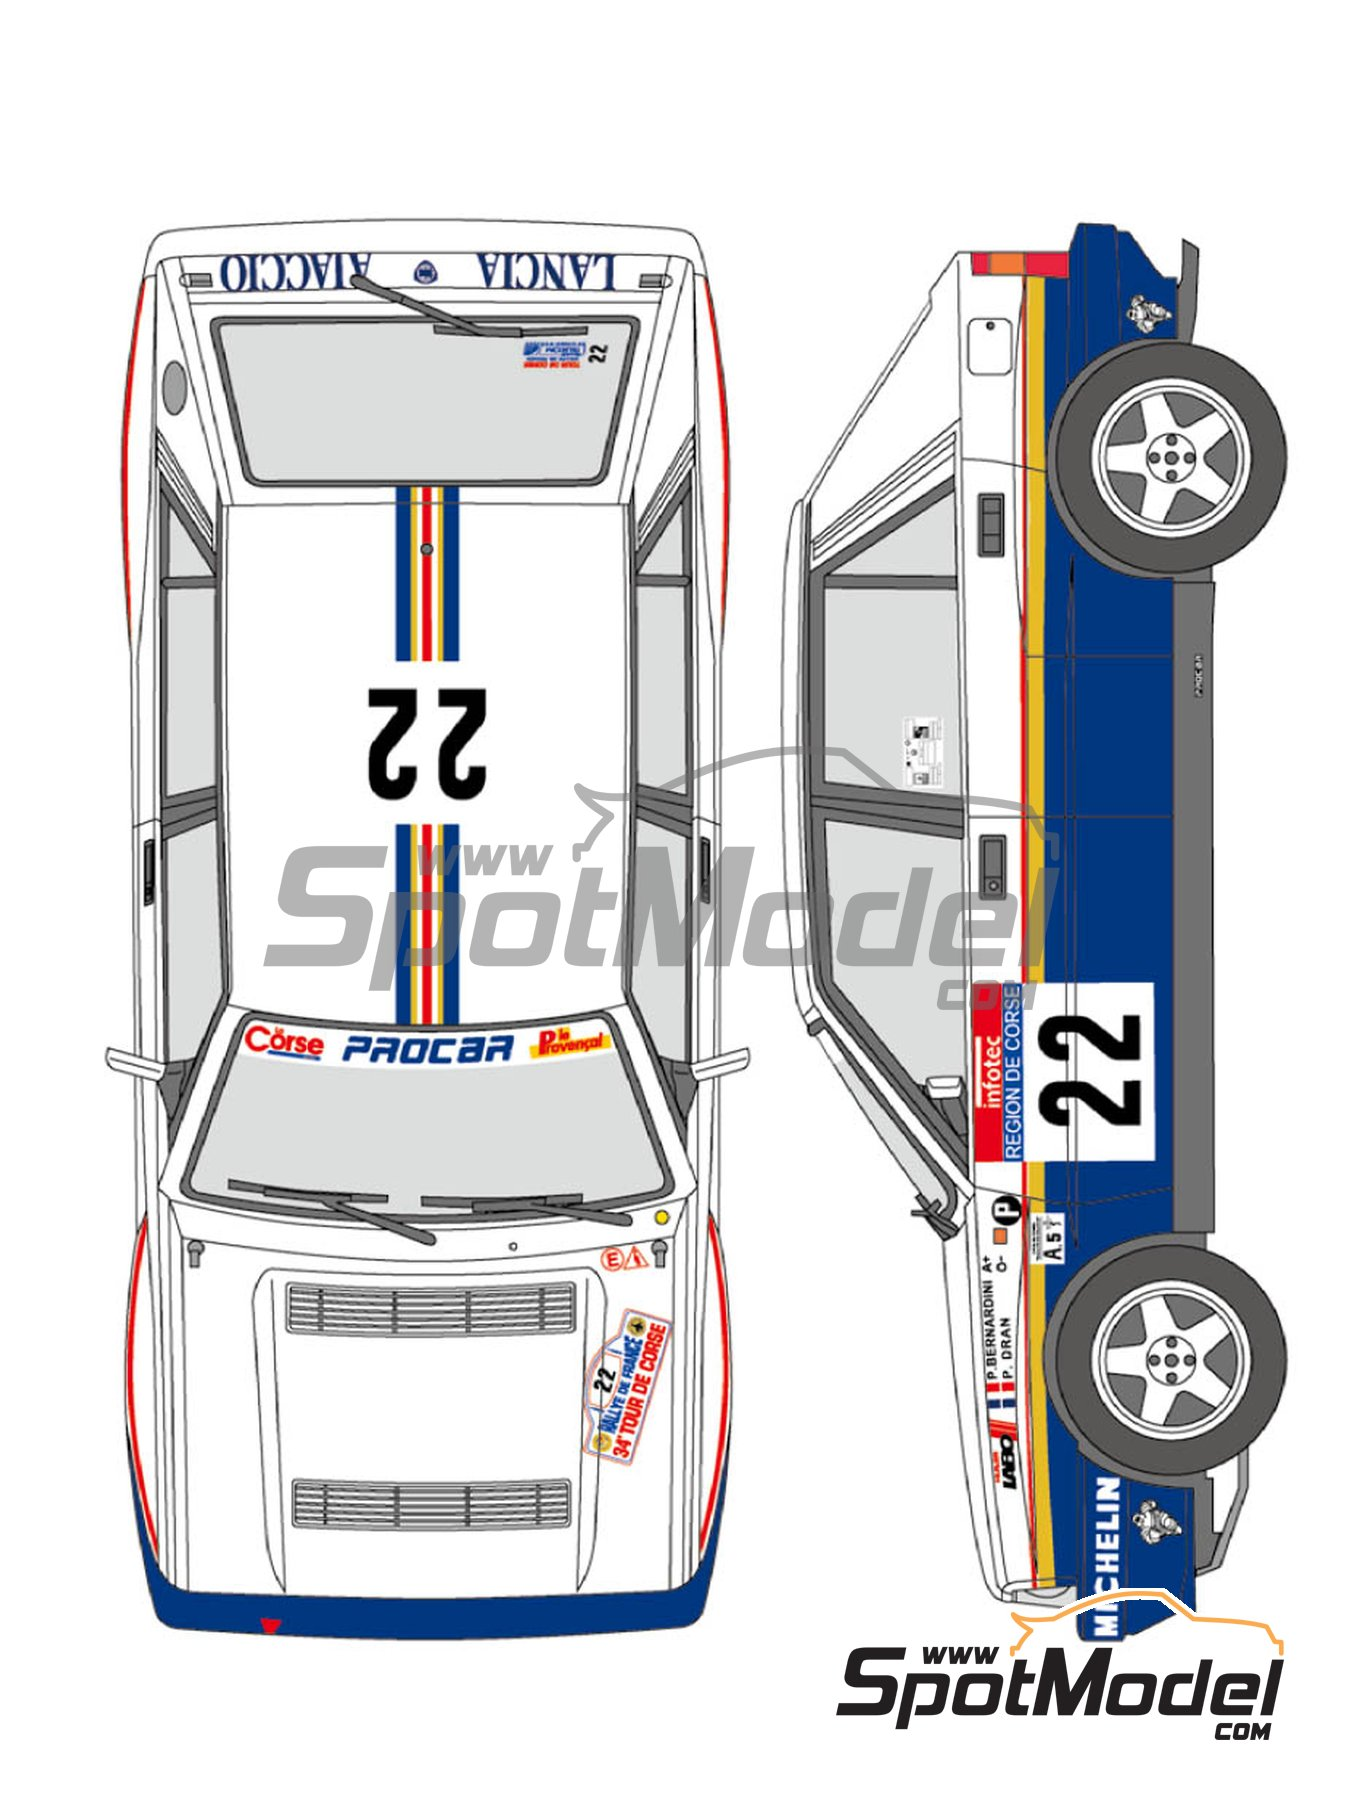 Lancia Delta HF Integrale 16v Rothmans - Tour de Corse 1990 | Marking / livery in 1/24 scale manufactured by Shunko Models (ref. SHK-D334) image